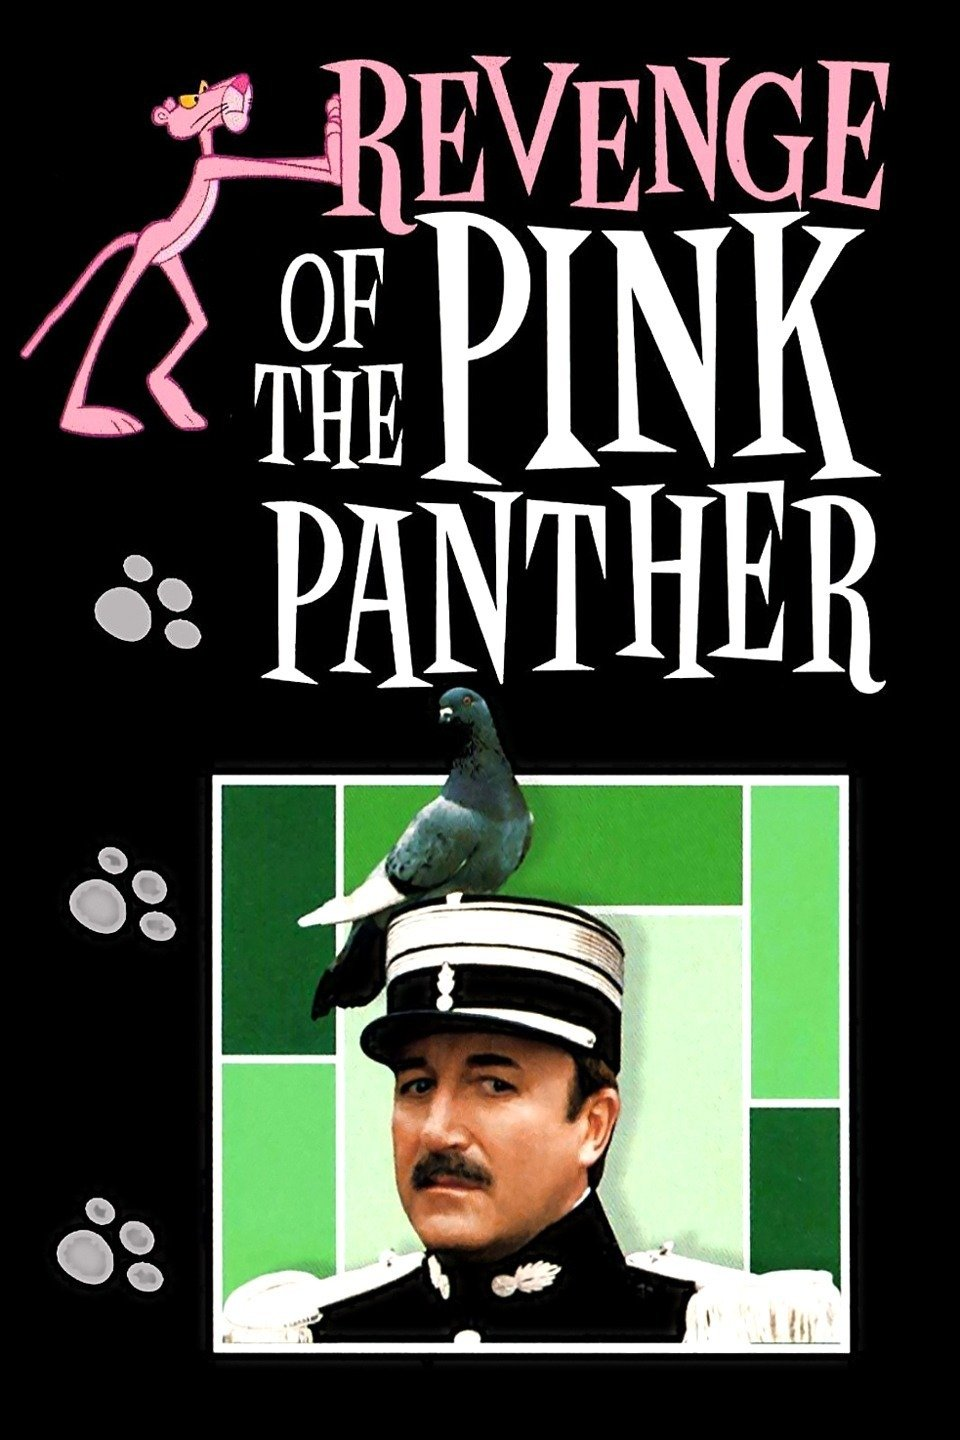 revenge-of-the-pink-panther